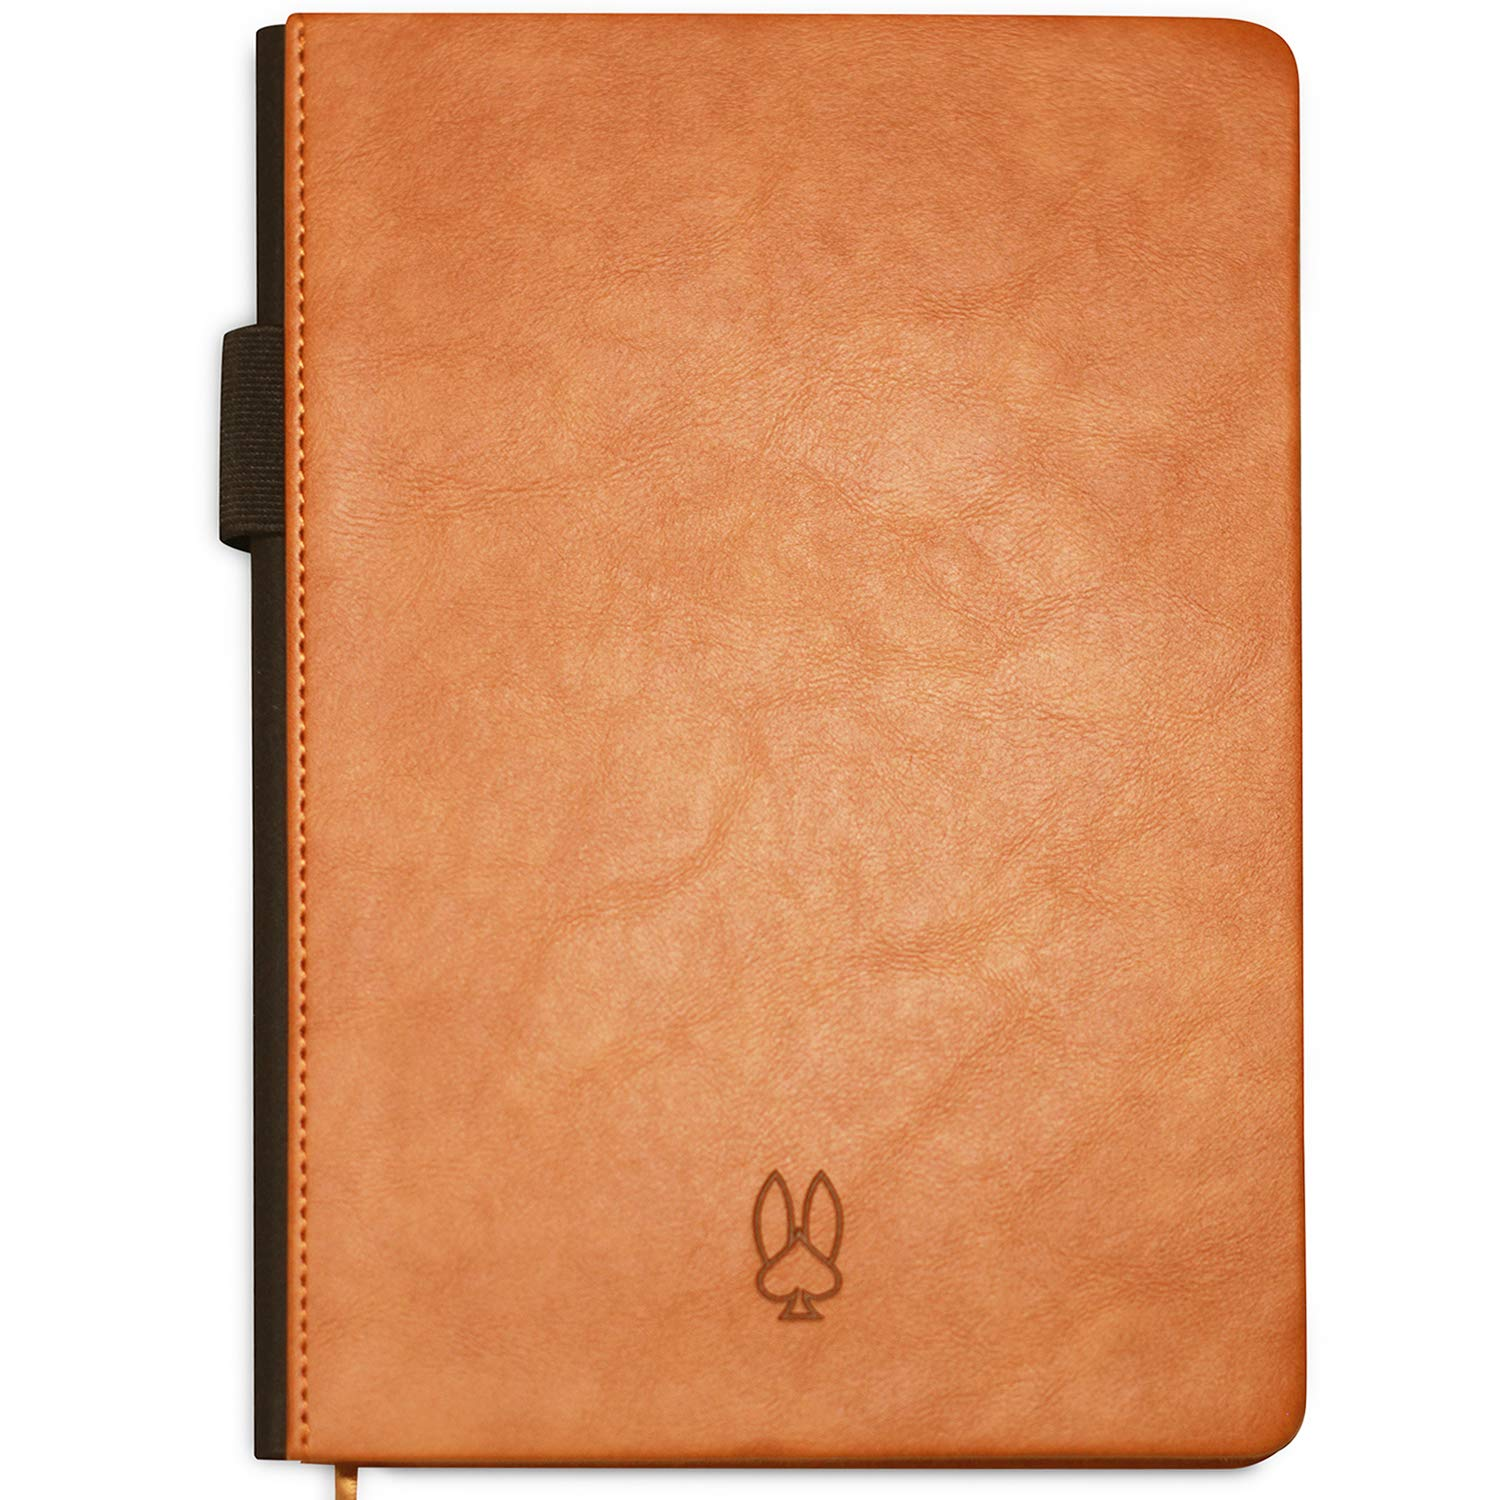 ACE Music Notebook | Leather Hardcover | Songwriting Journal | Staff Paper Notebook (Premium)